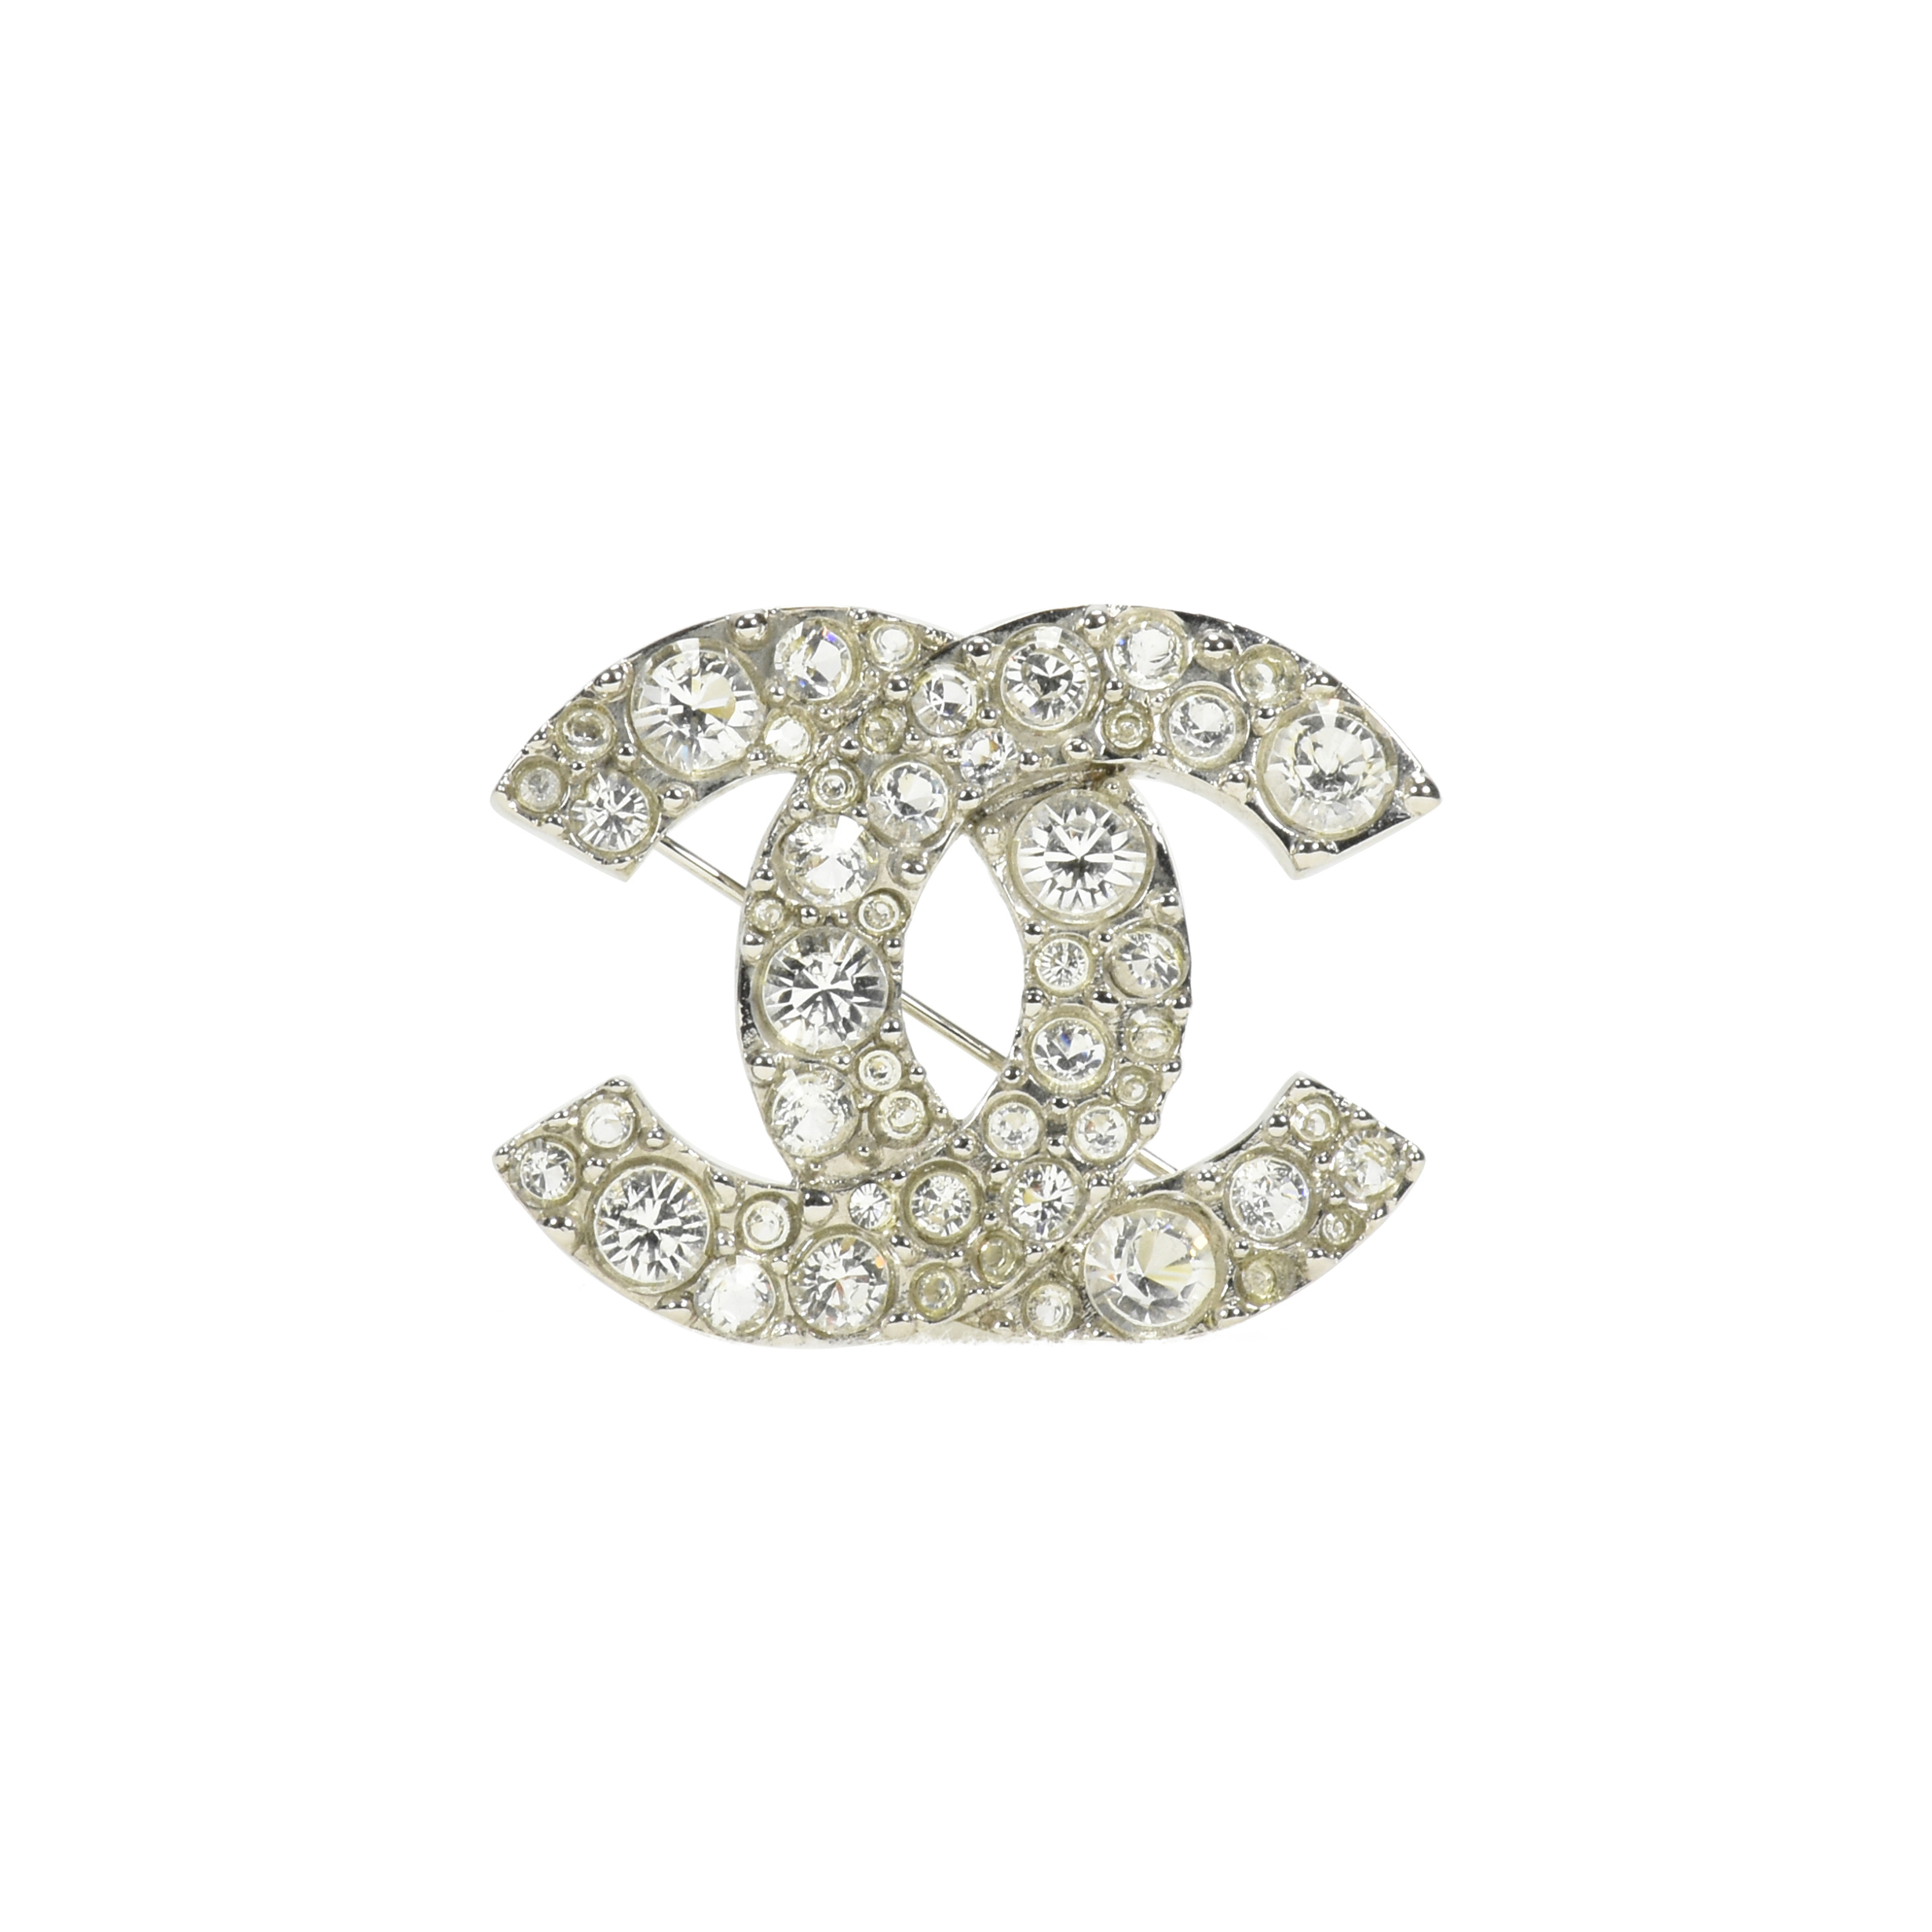 shop features crop dazzling editor s a four product brooches new timeless lion set collection pin subsampling l lesprit du false chanel esprit with including jewellery chanels upscale cut high the scale brilliant diamonds brooch